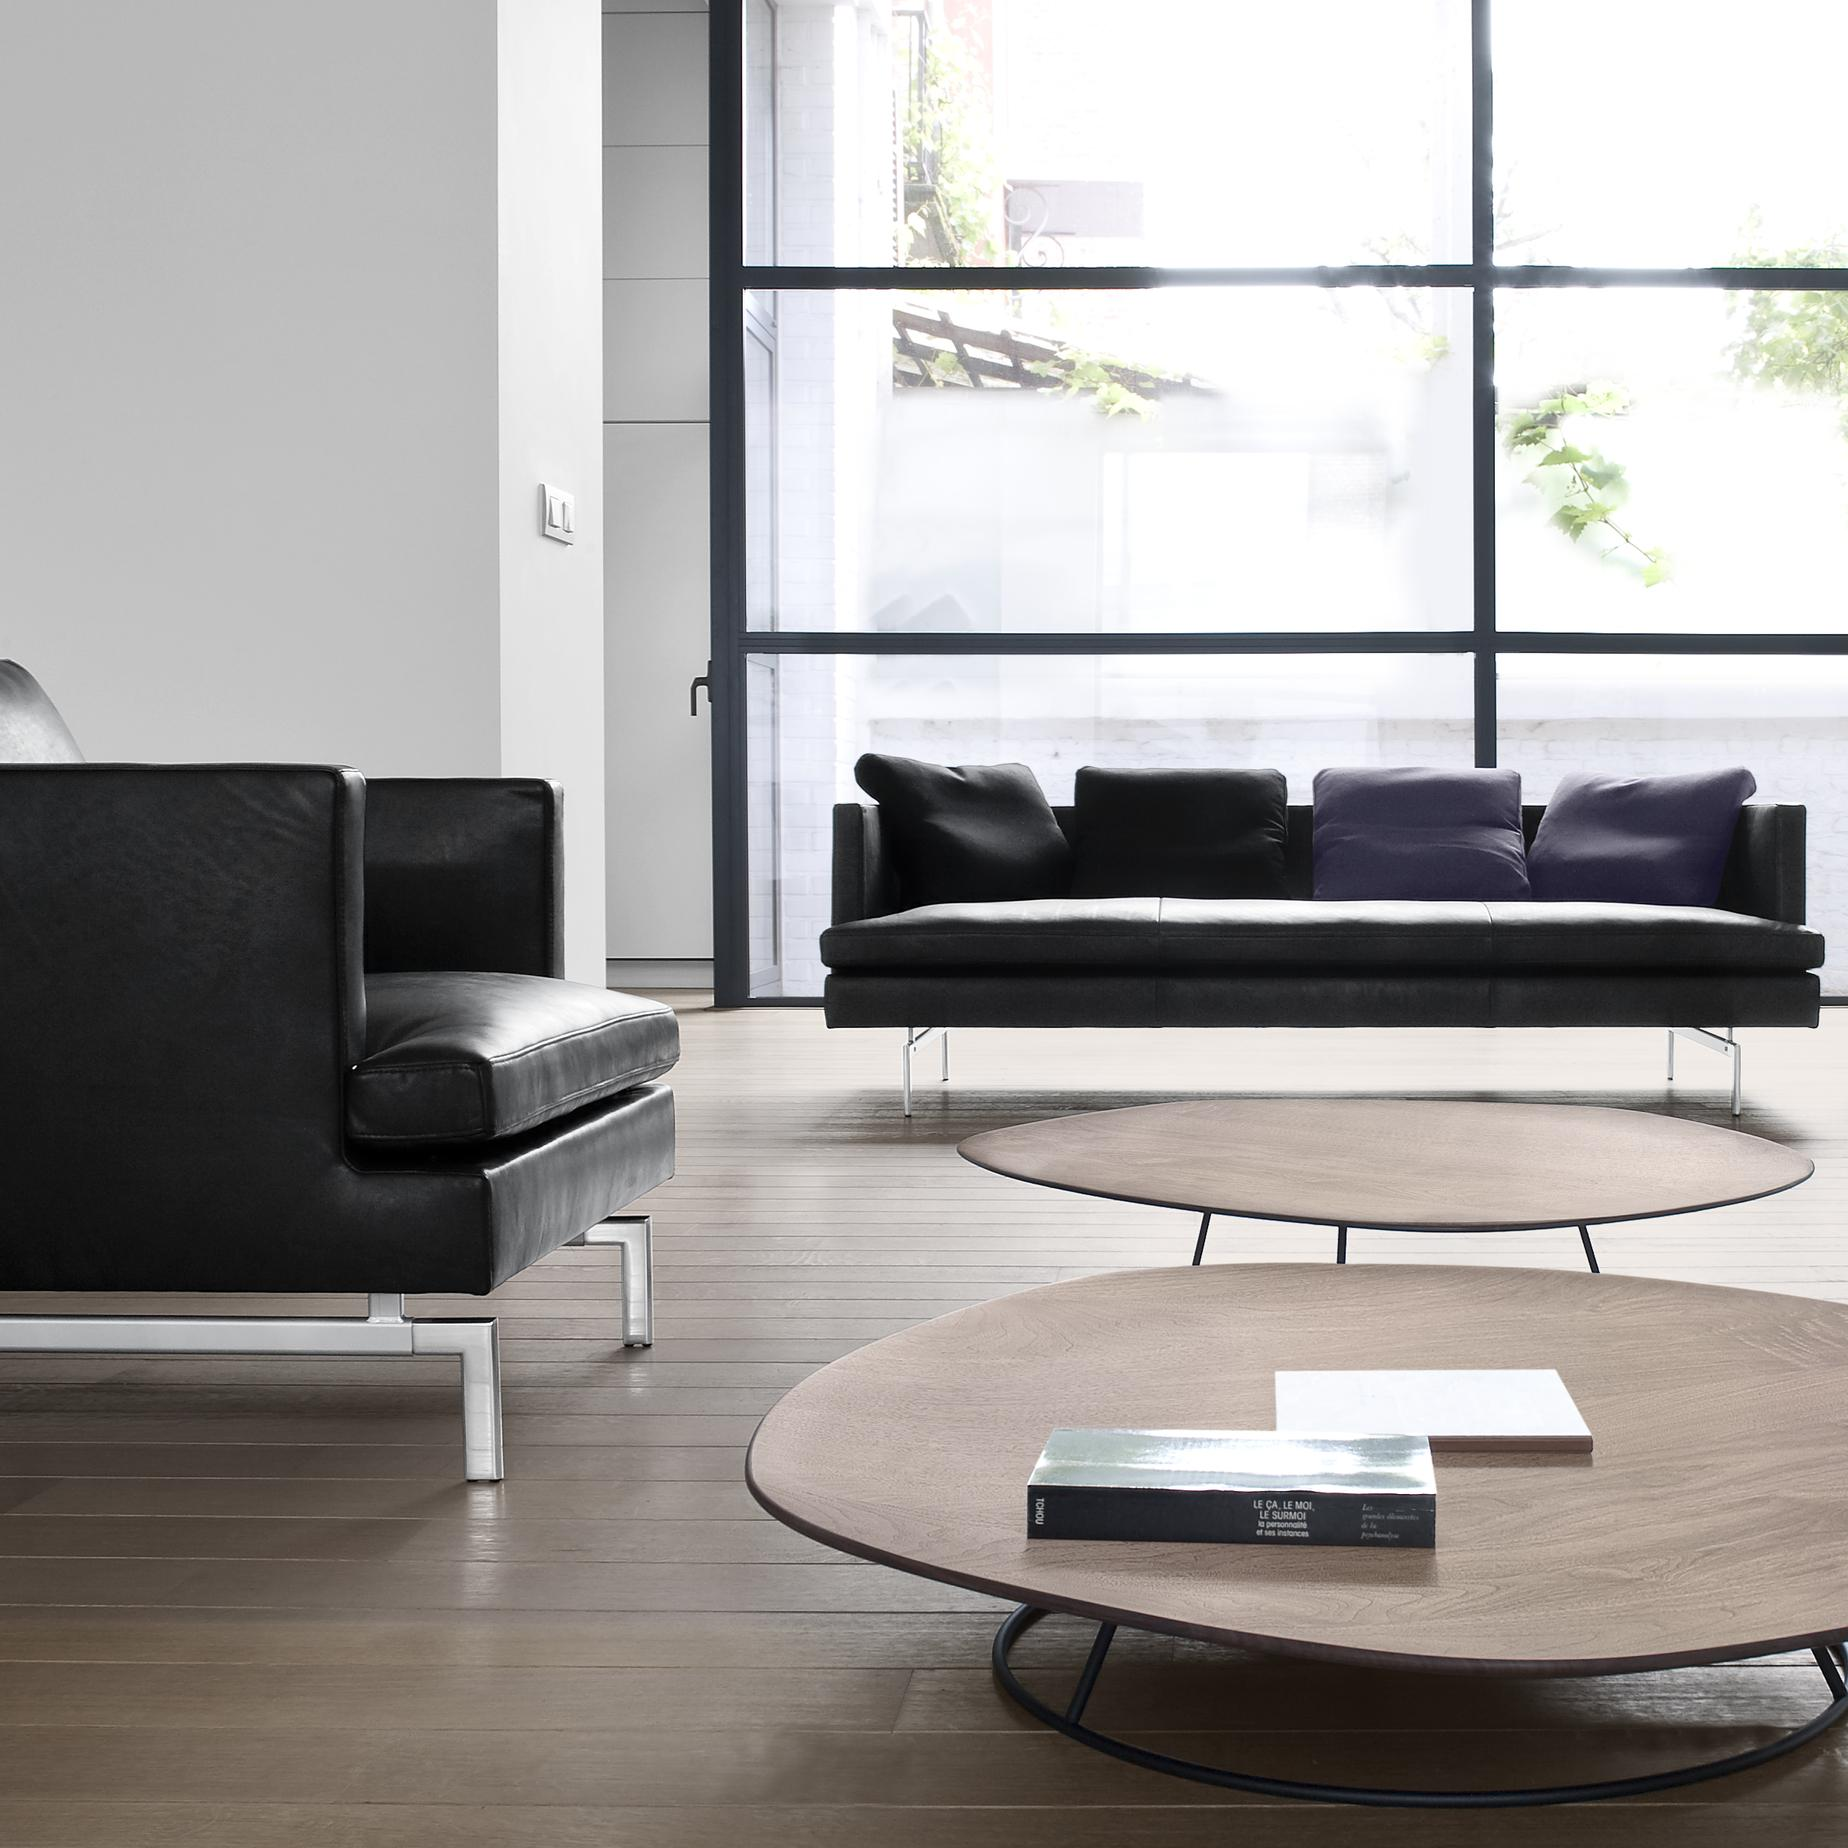 PEBBLE Occasional Tables from Designer Air Division Ligne Roset